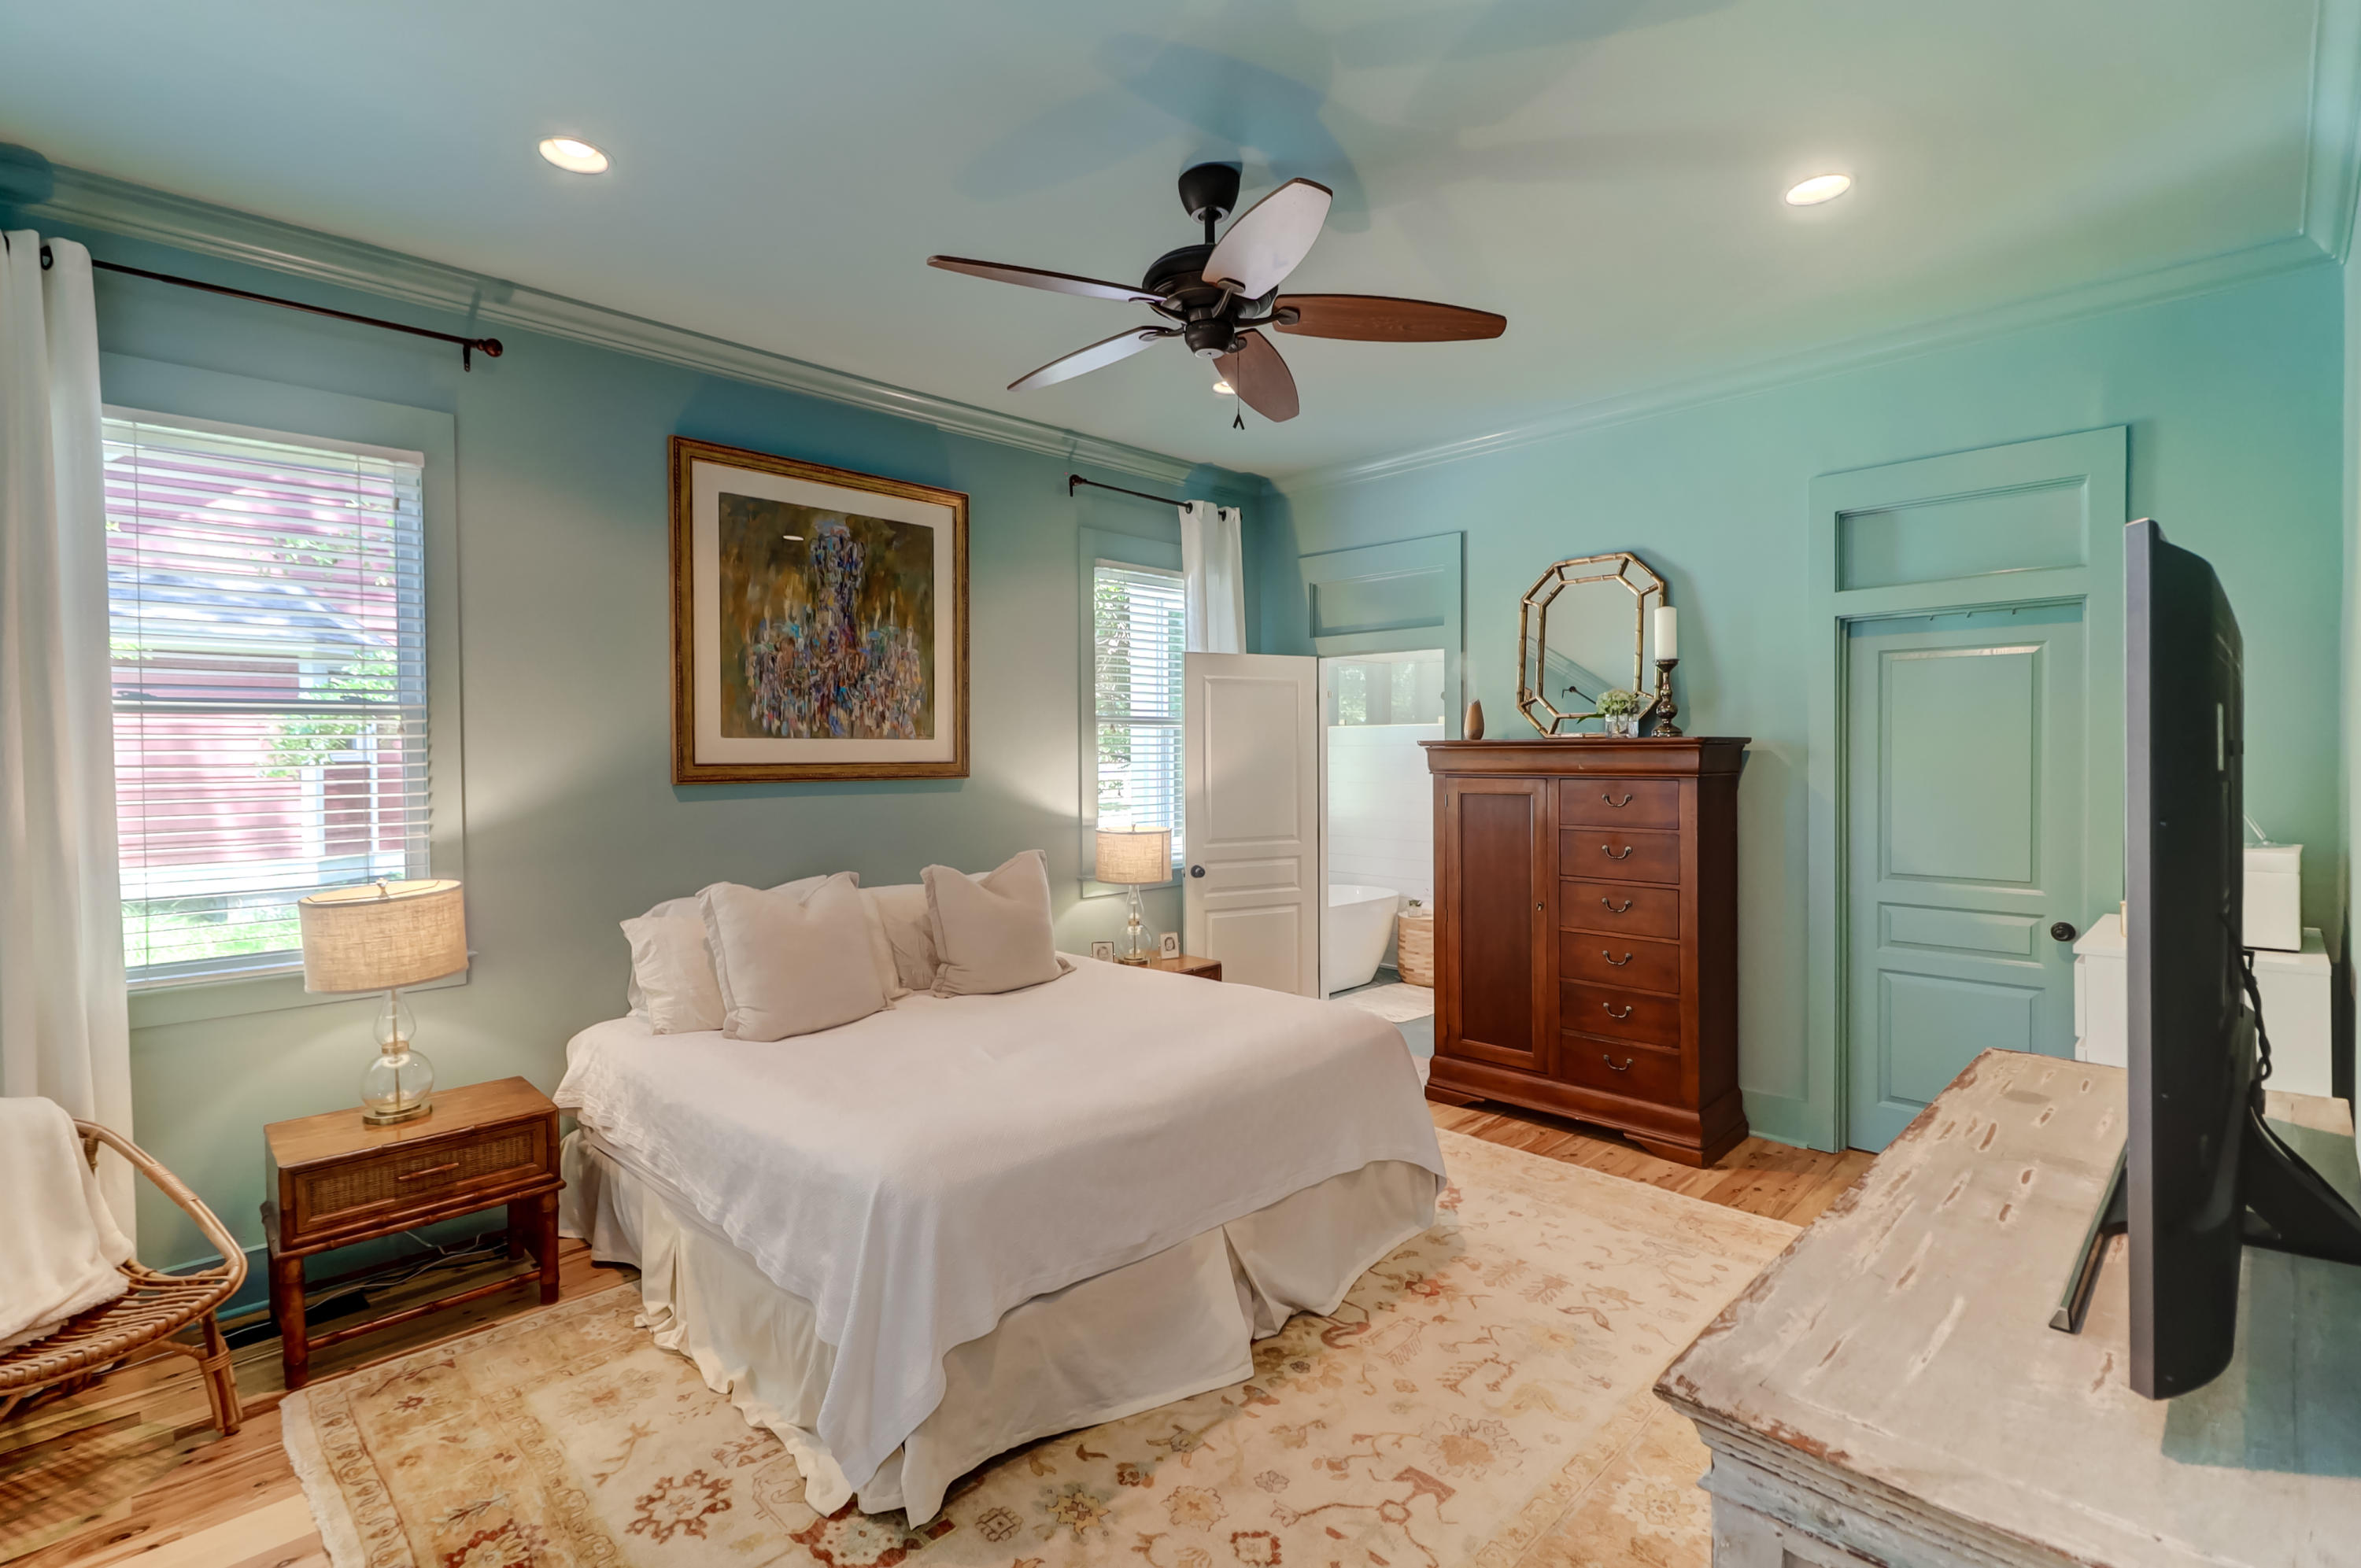 The Villages In St Johns Woods Homes For Sale - 5056 Coral Reef Dr, Johns Island, SC - 23